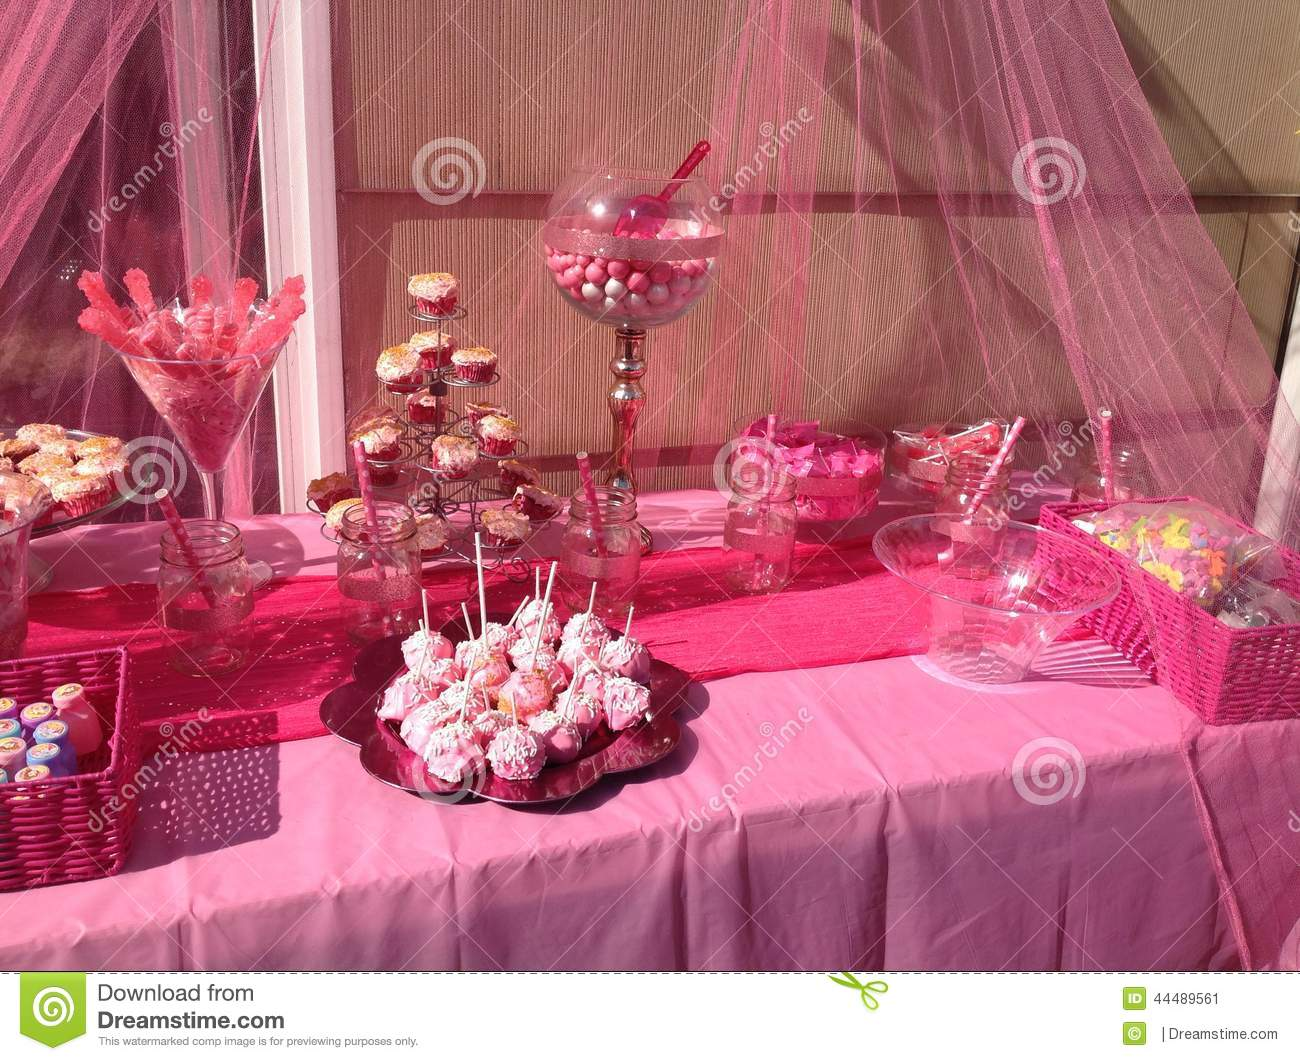 Pink Candy Bar Stock Photo - Image: 44489561